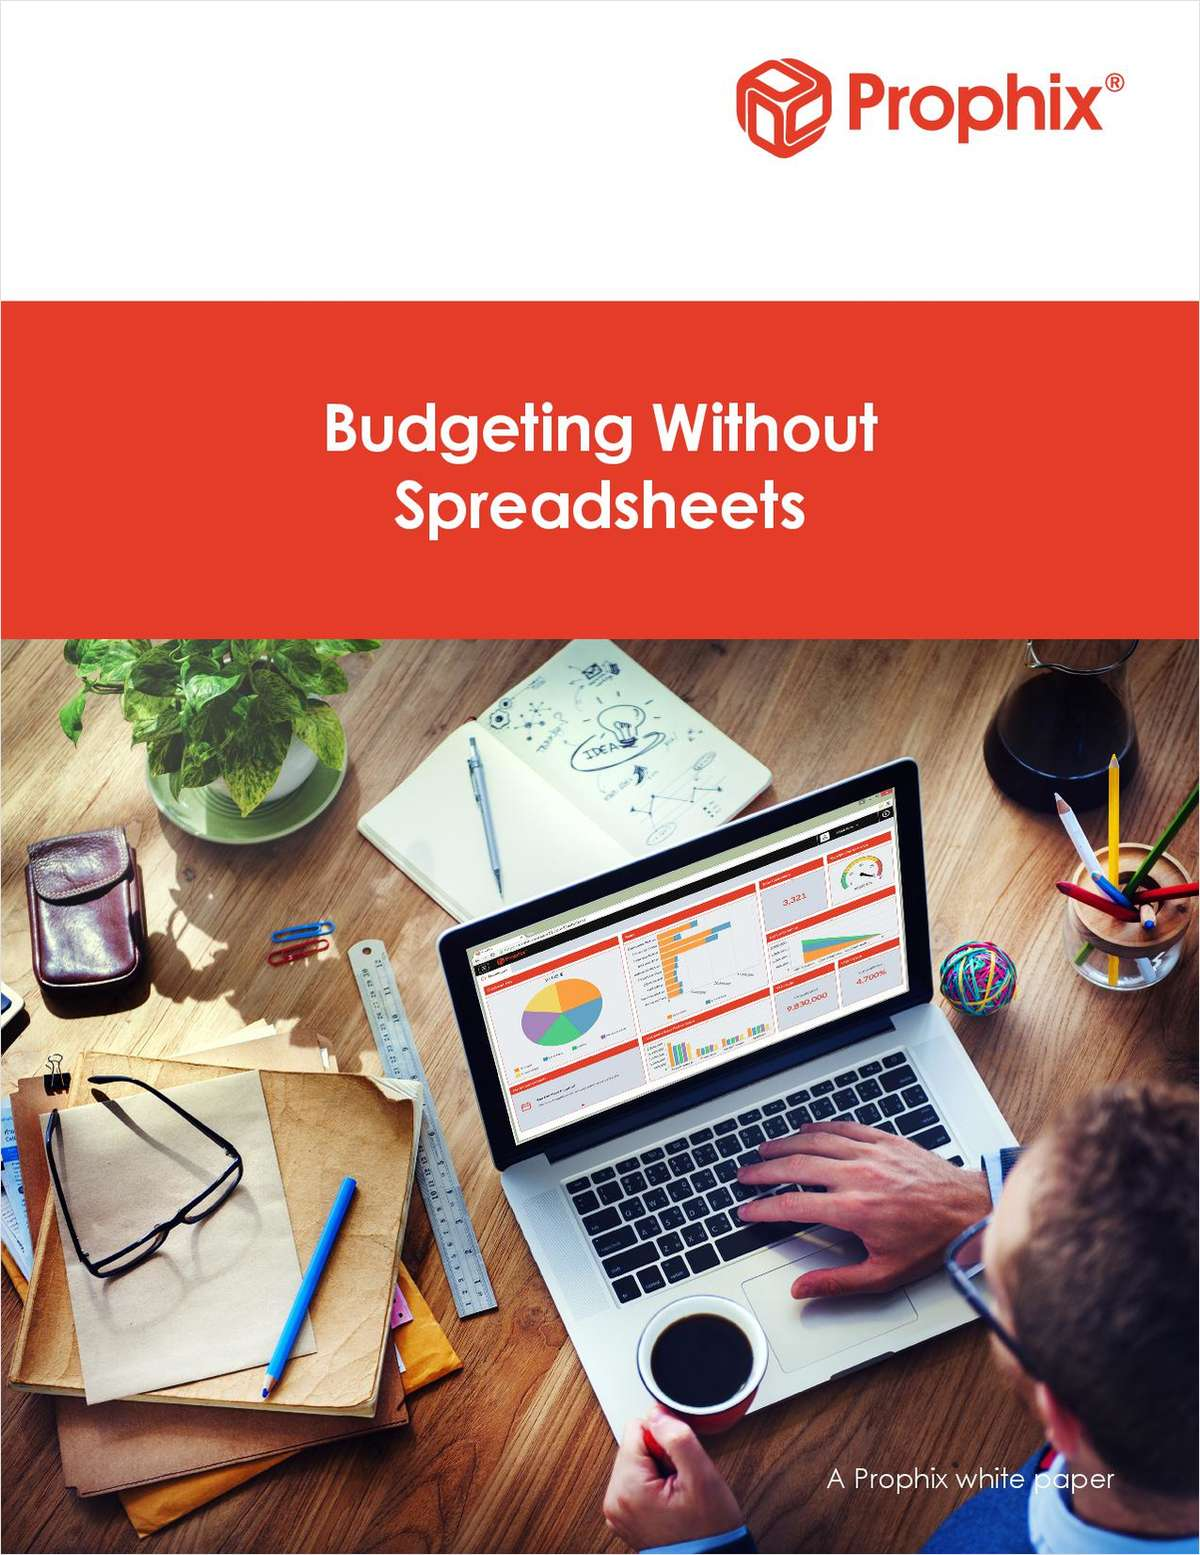 Budgeting Without Spreadsheets